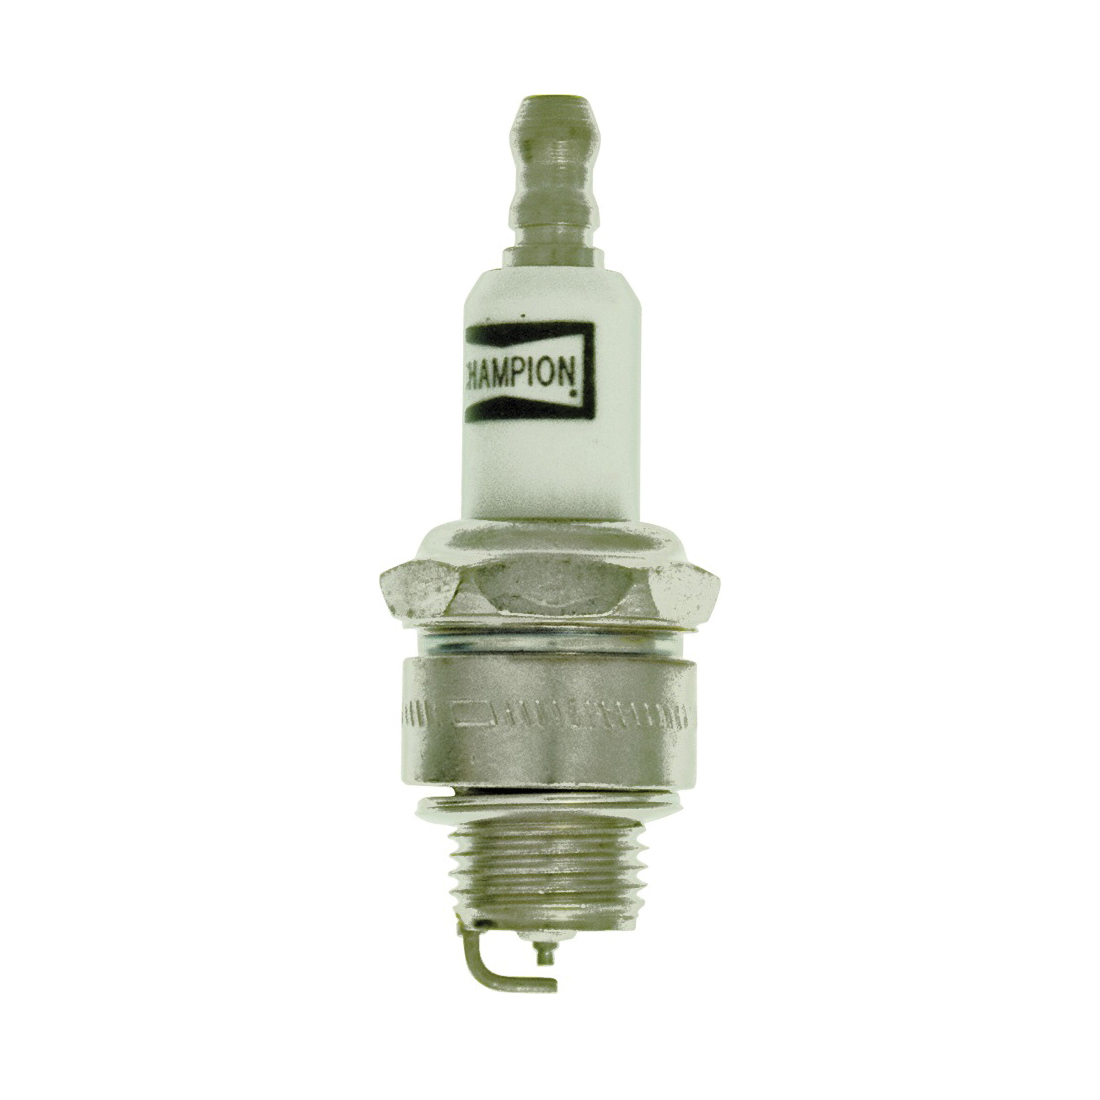 Picture of Champion 861ECO/5861 Spark Plug, 0.022 to 0.028 in Fill Gap, 0.551 in Thread, 0.819 in Hex